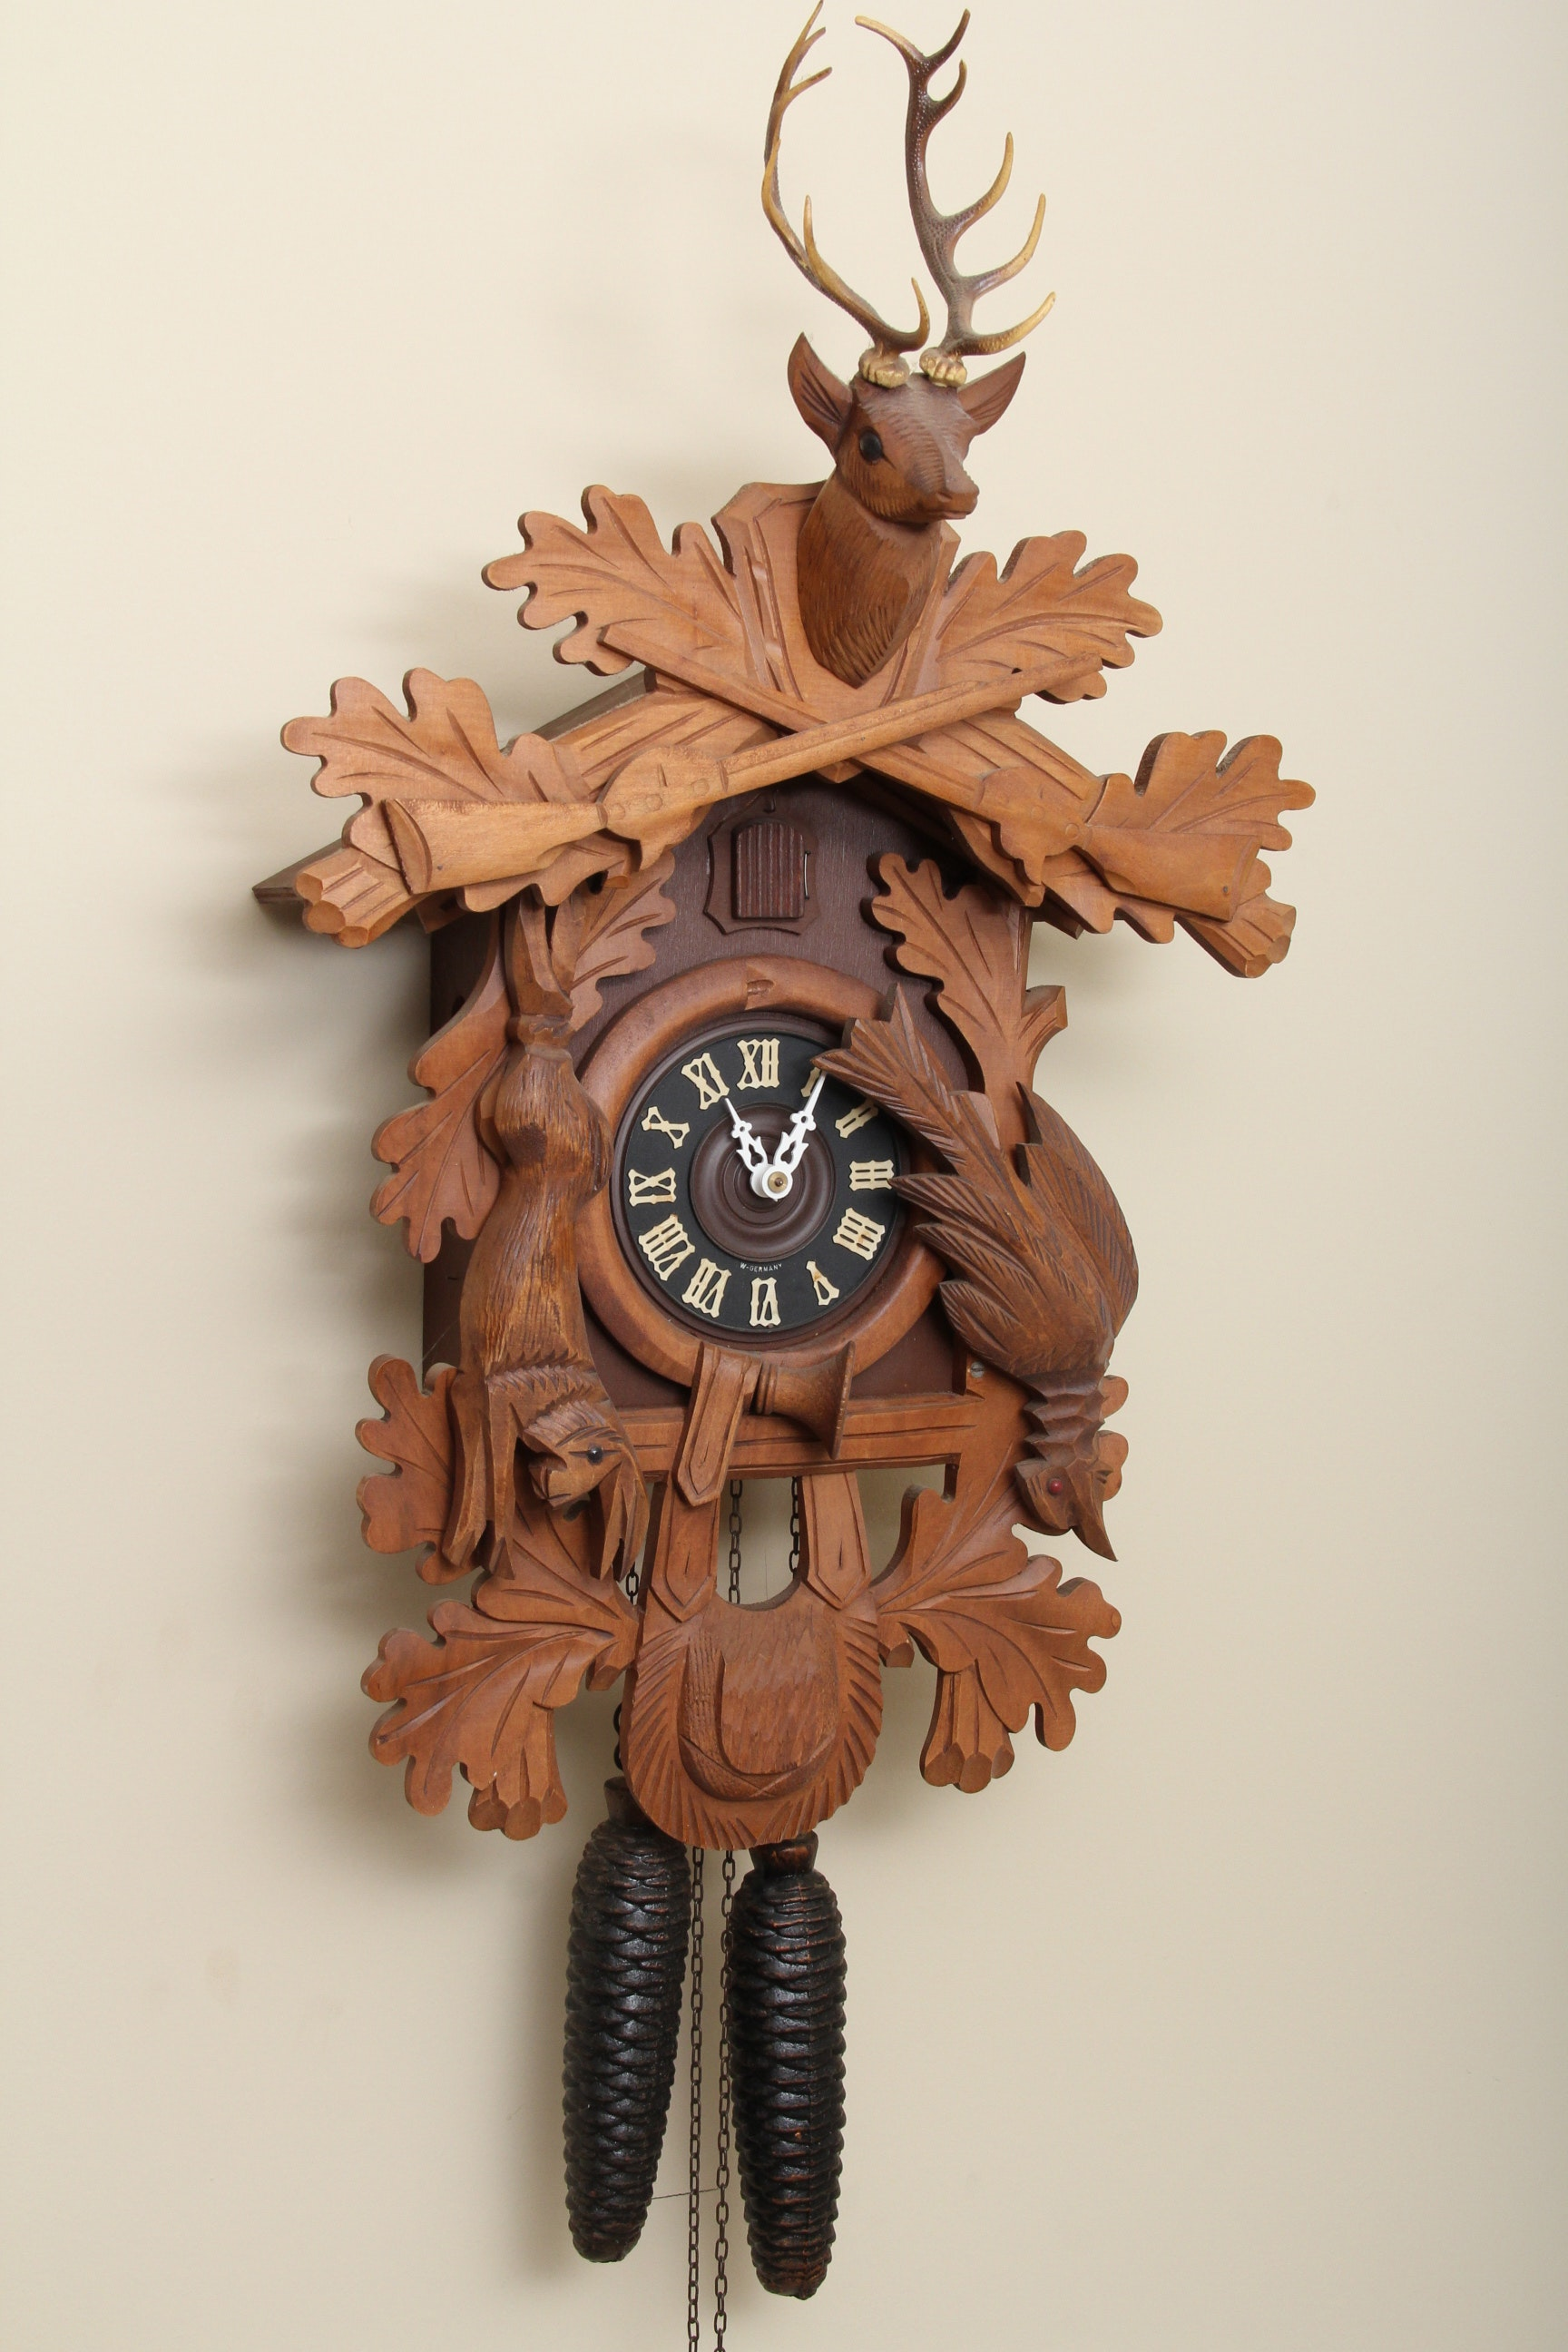 Hunters Cuckoo Clock from West Germany : EBTH